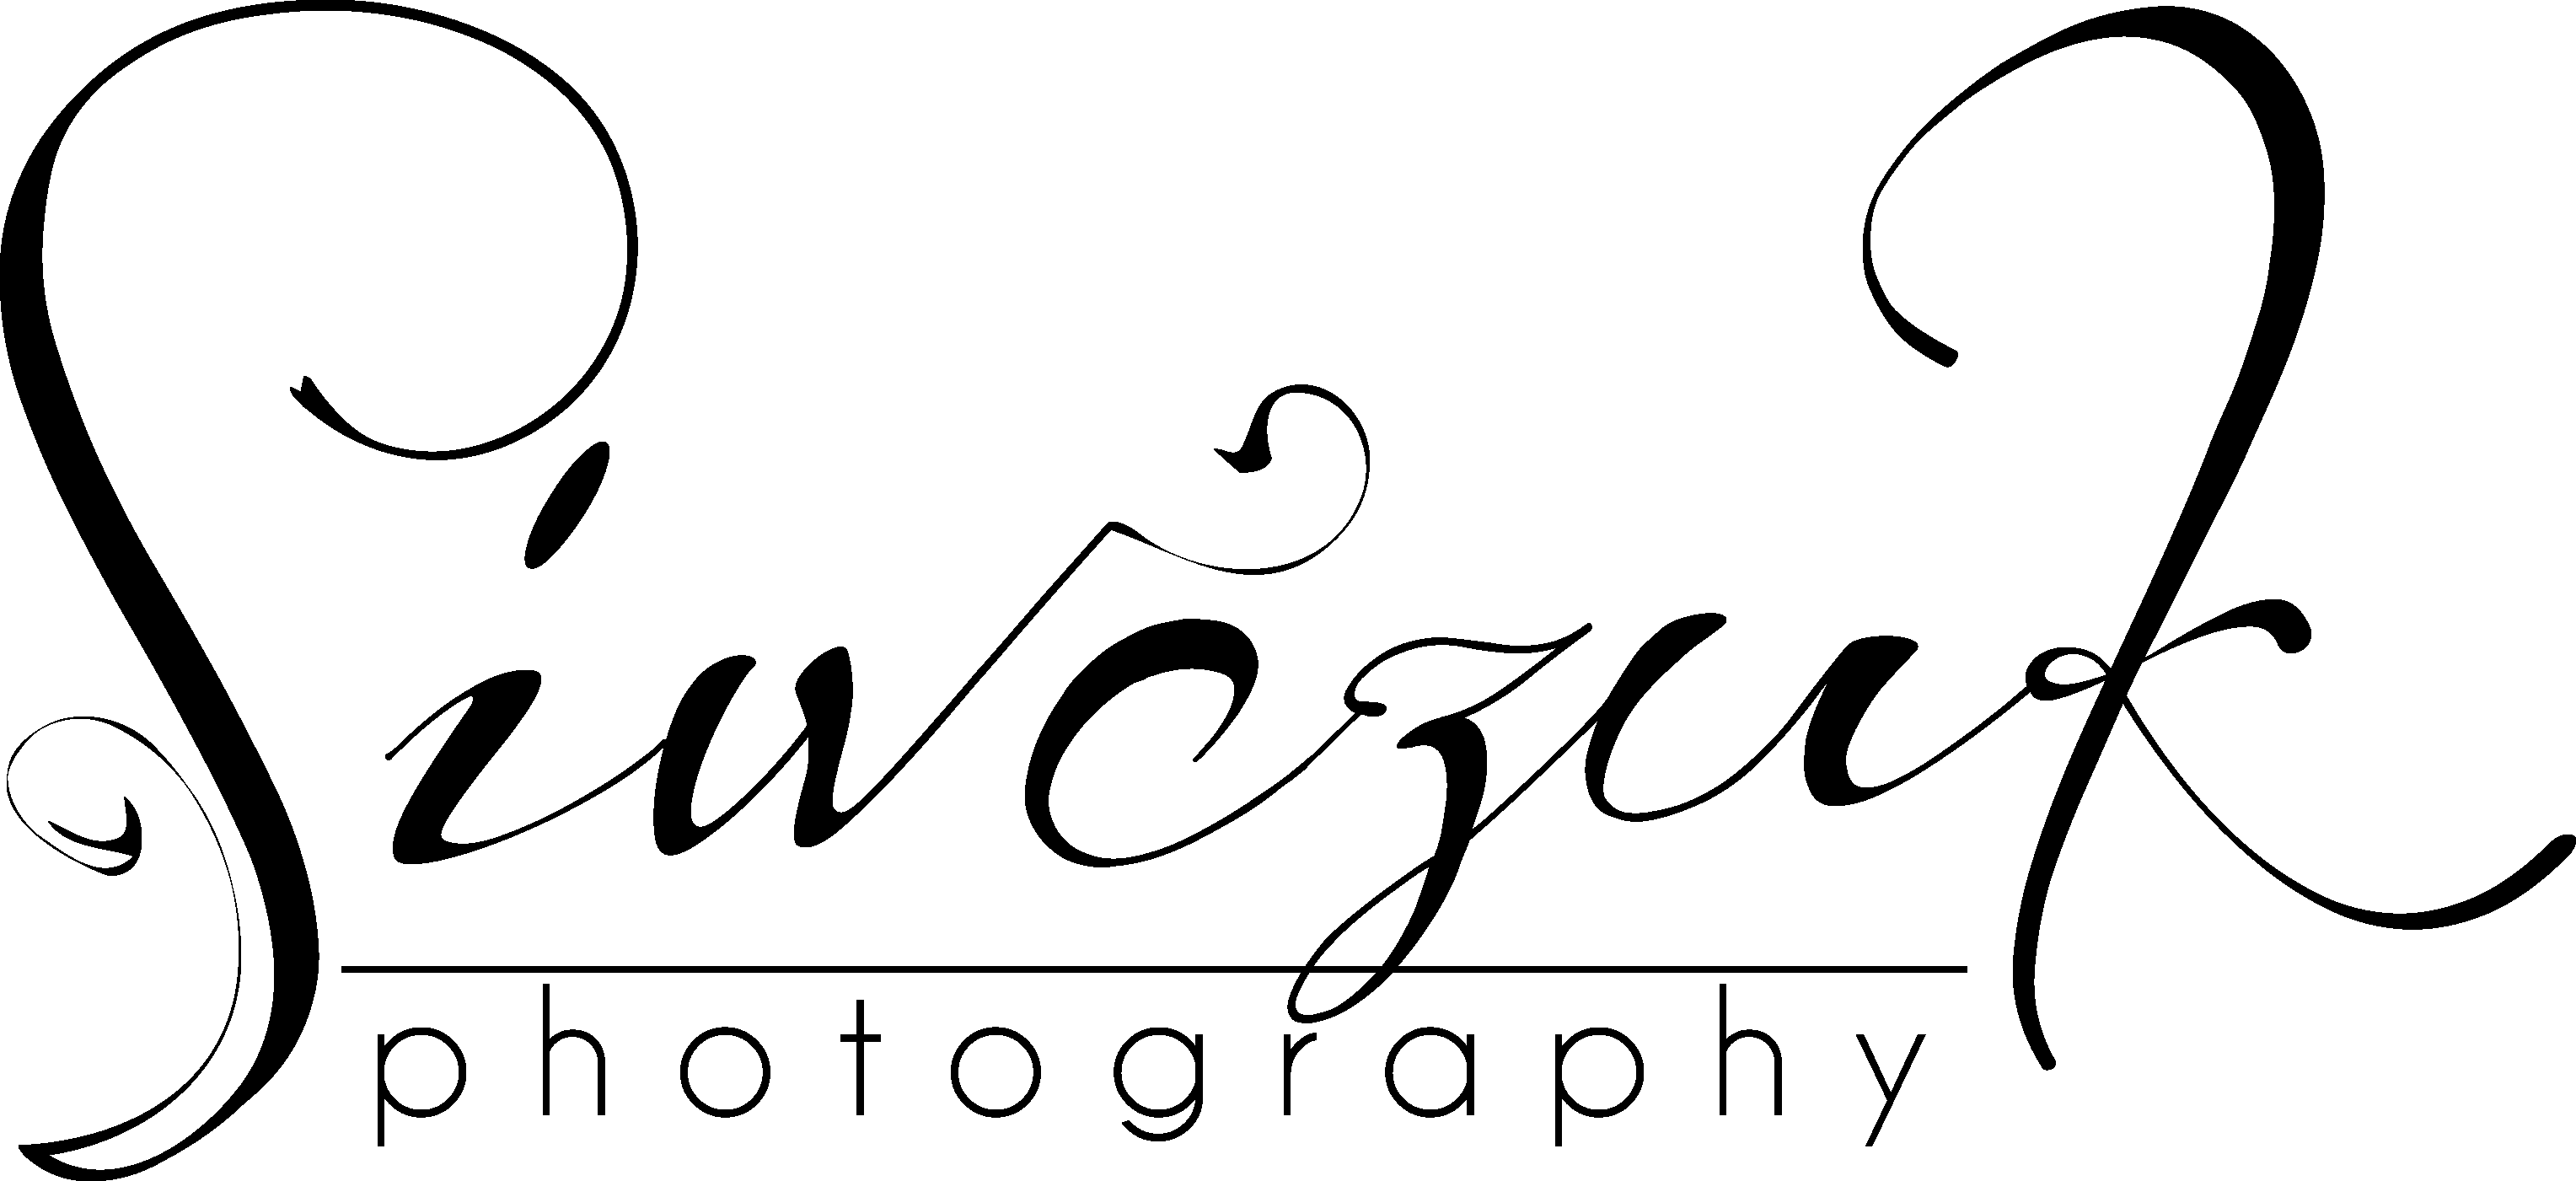 Siwczuk photography & video